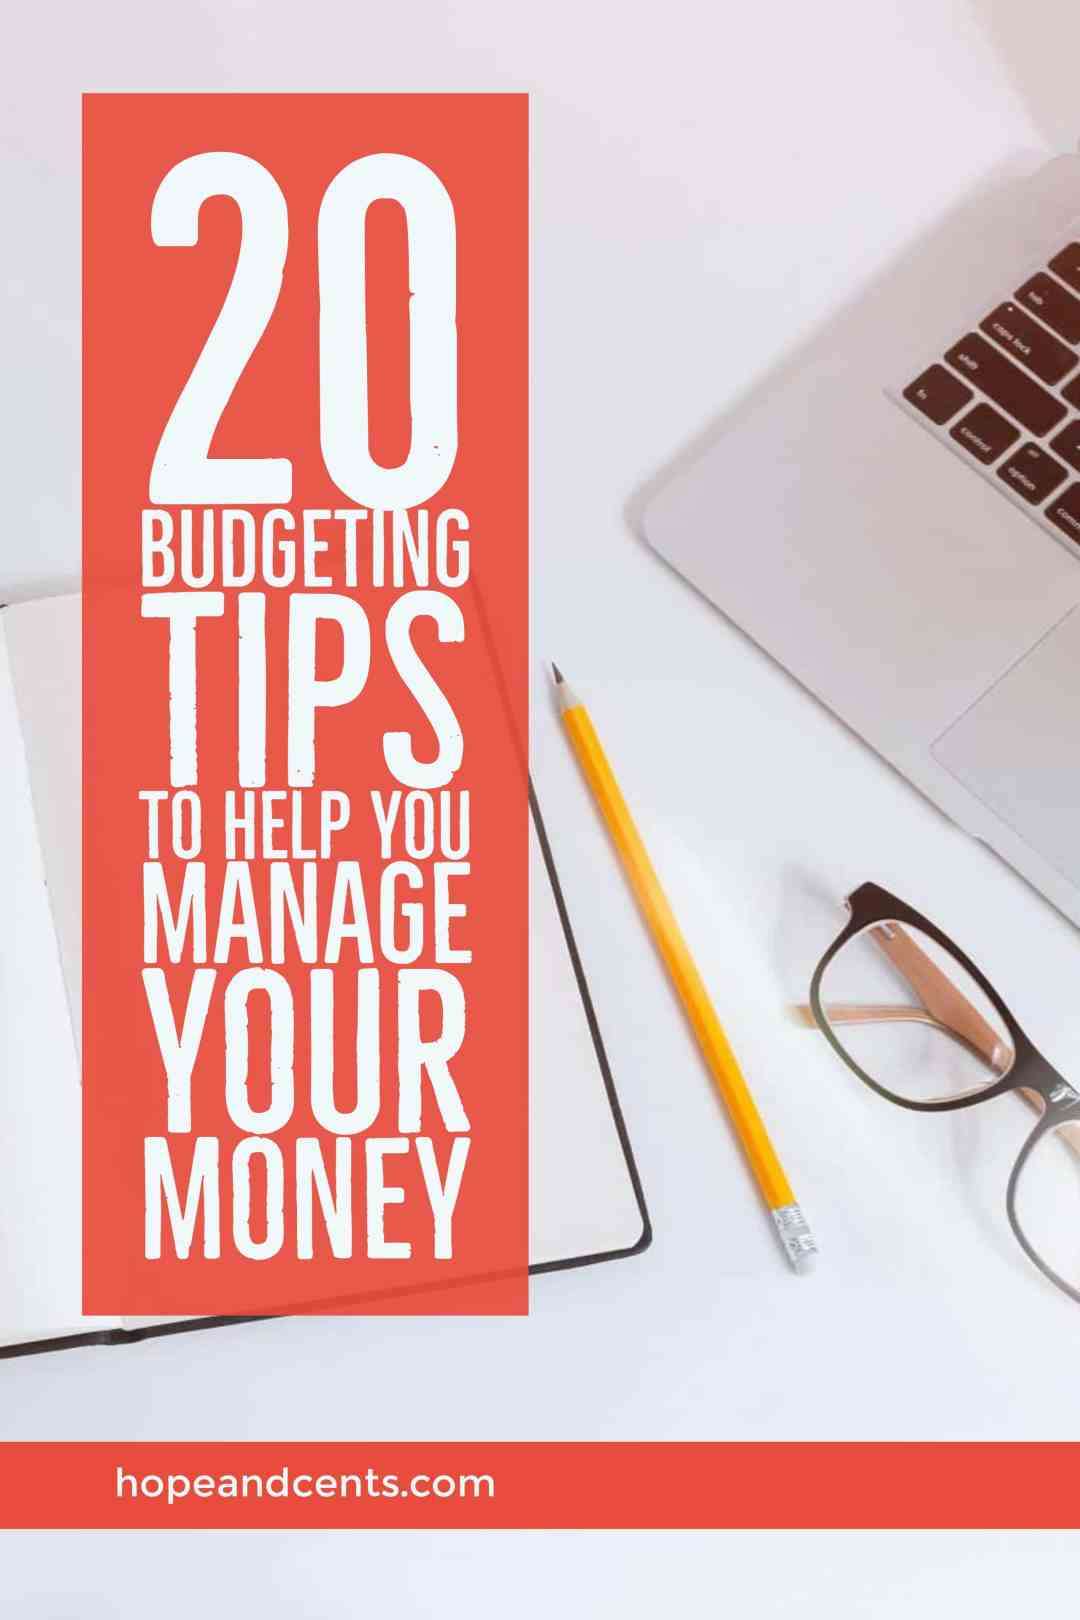 Do you feel like budgeting doesn't work sometimes? Love these quick budgeting tips you can start using right away to create a working budget, save money, and live frugally! | how to budget | frugal living | saving money | #budget #money #personalfinance #frugalliving